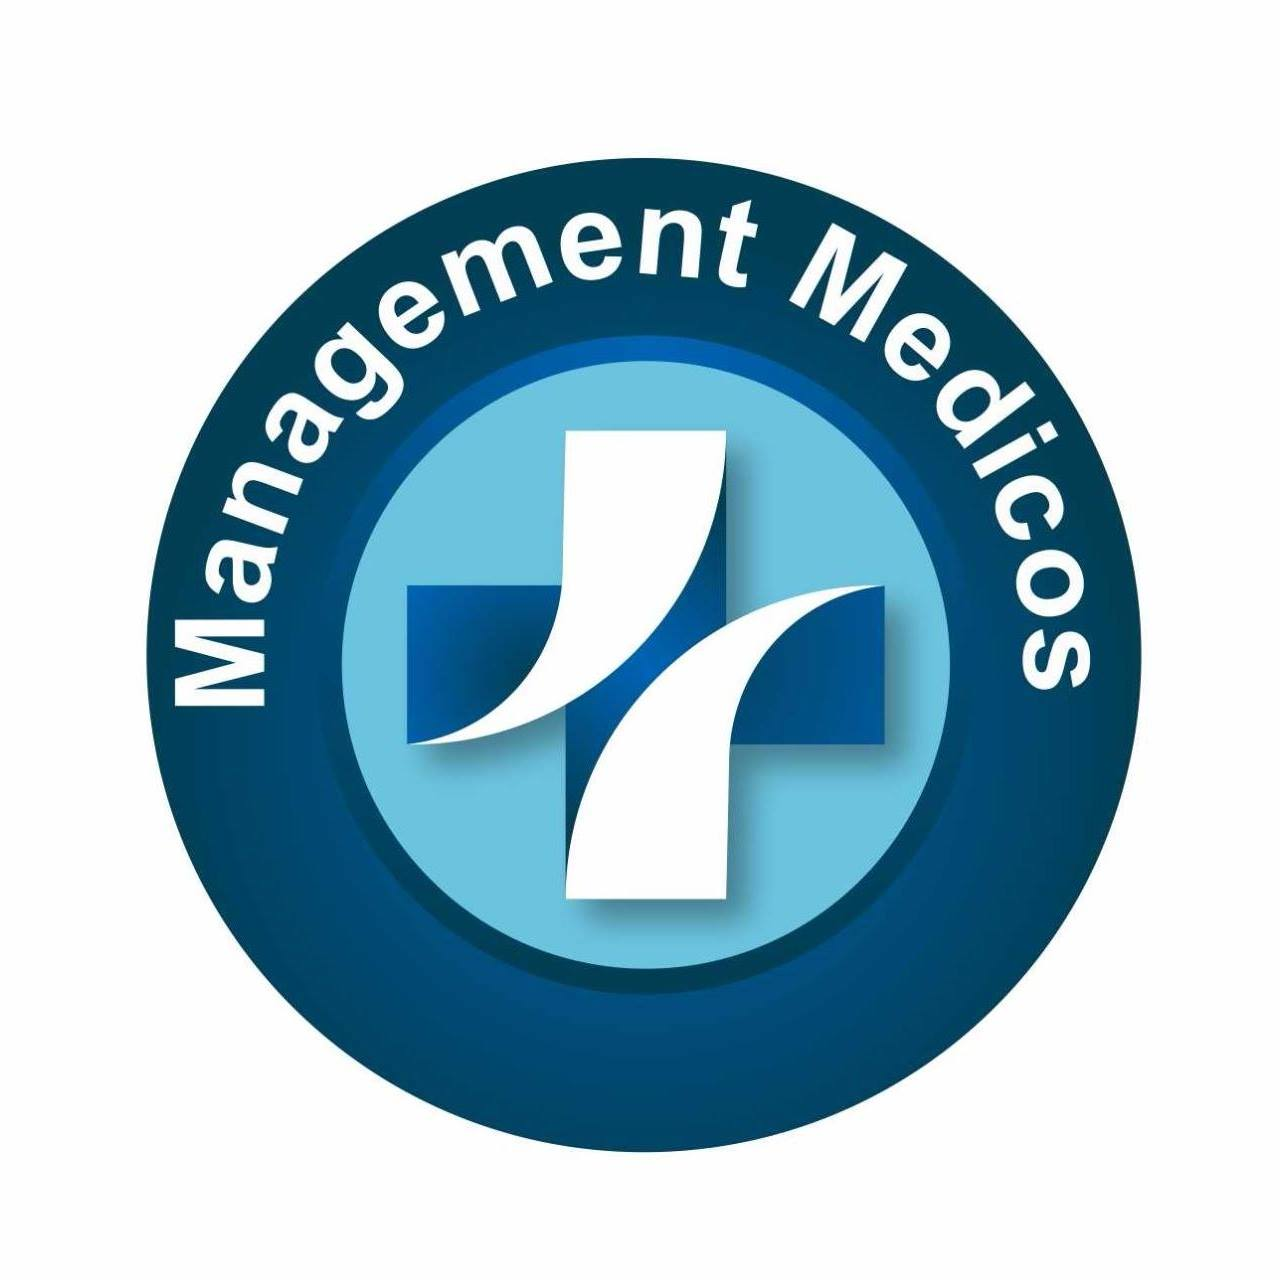 MANAGEMENT MEDICOS - The Medical Management Consultants